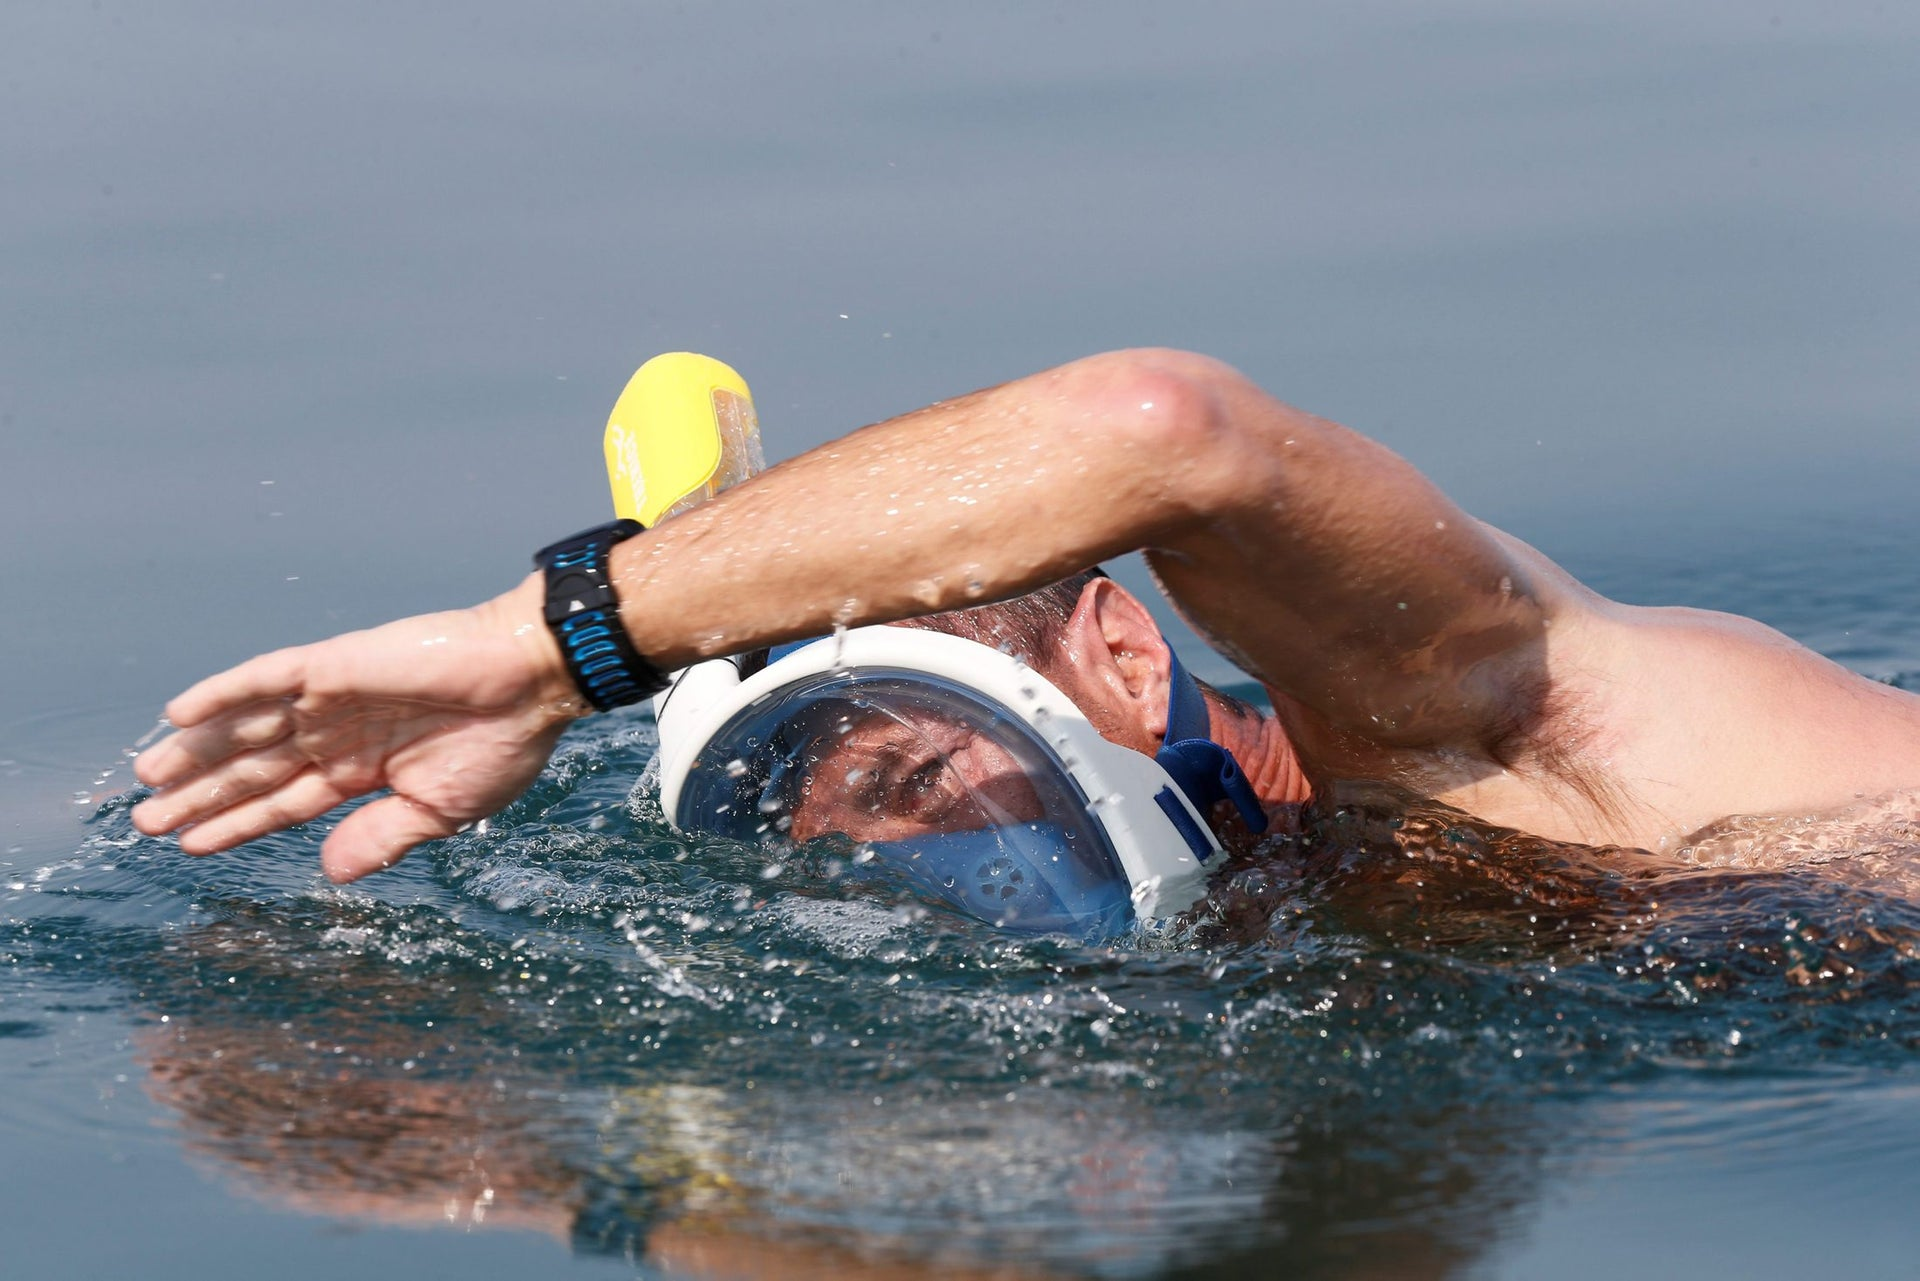 """An environmental activist takes part in """"The Dead Sea Swim Challenge"""", swimming from the Jordanian to Israeli shore, to draw attention to the ecological threats facing the Dead Sea, in Kibbutz Ein Gedi, Israel November 15, 2016."""